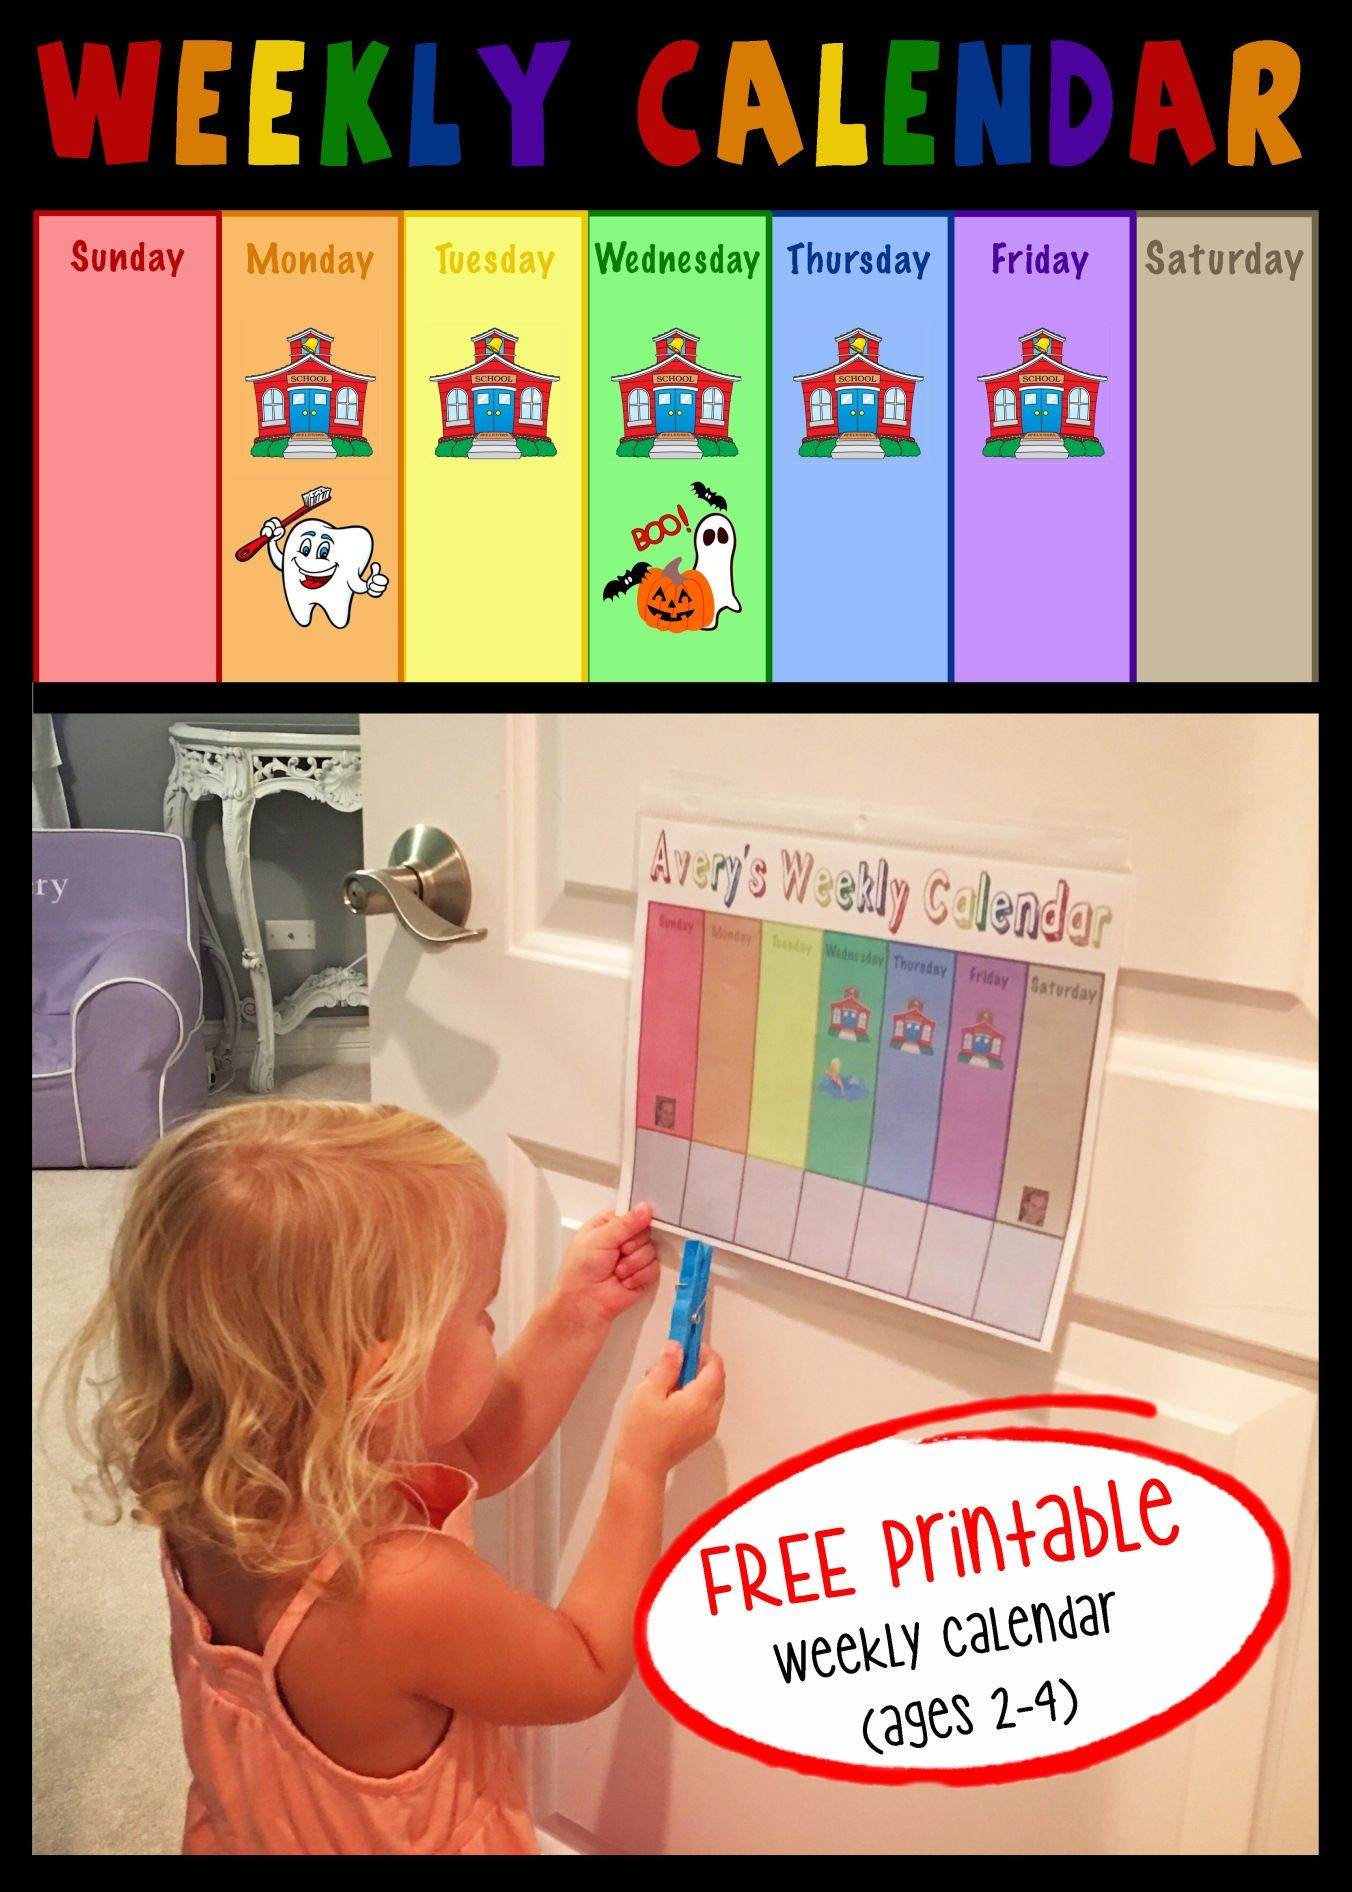 March Calendar Kids Más Recientes Free Printable toddler Weekly Calendar Projectsinparenting Of March Calendar Kids Actual Powerpoint Template for Kids top Calendar Powerpoint Template Ppt 0d